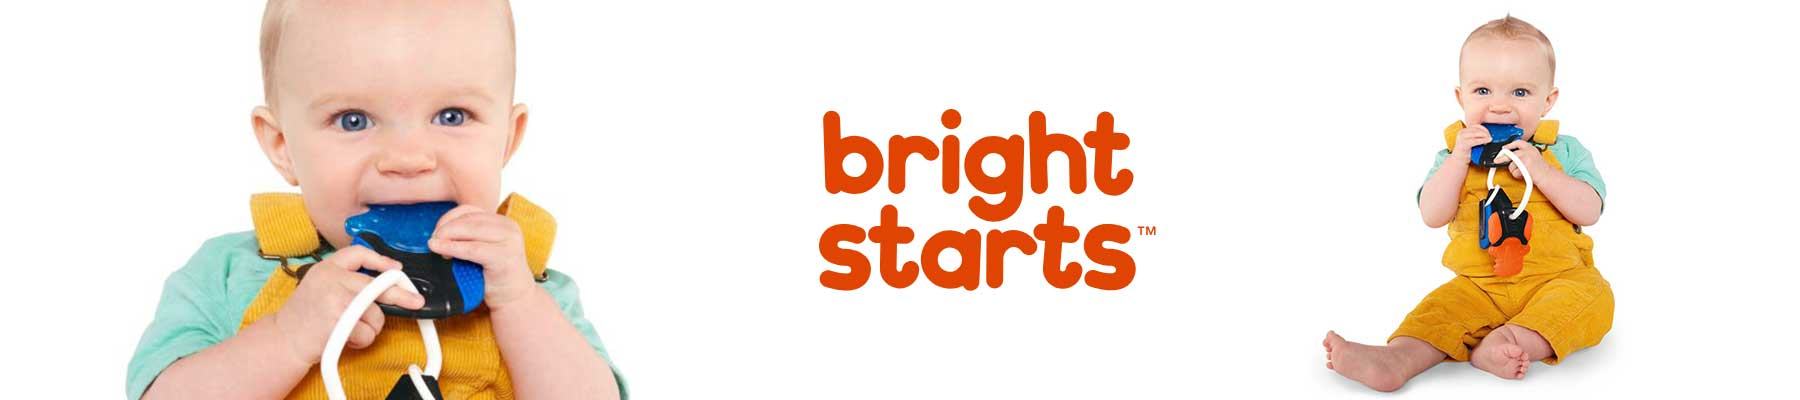 Bright Starts, An inexpensive brand of toys for babies.